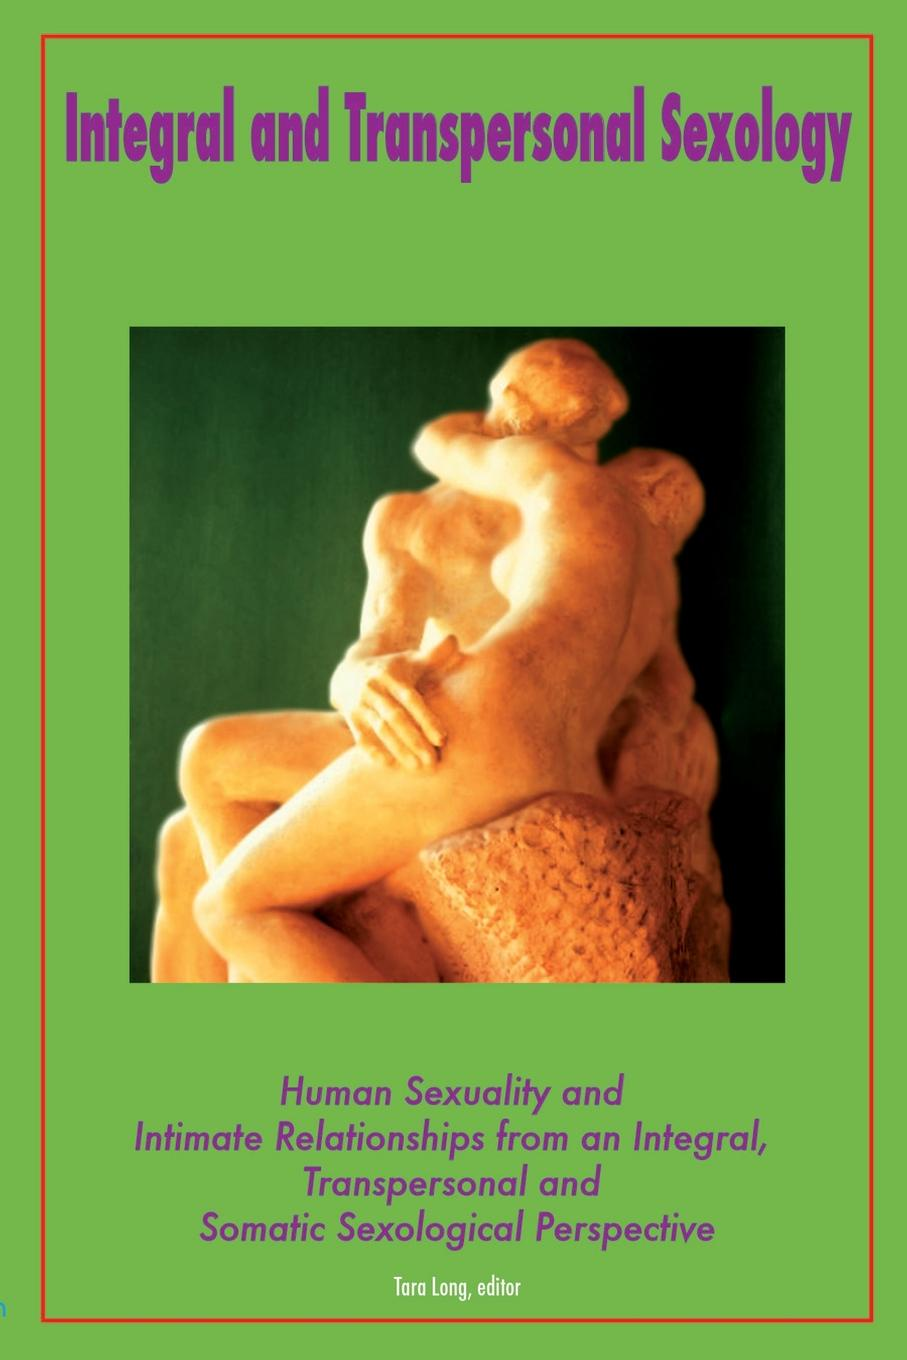 Editor Tara Long Integral and Transpersonal Sexology aleksandr strannik the most amazing things from the transpersonal psychologist's practice